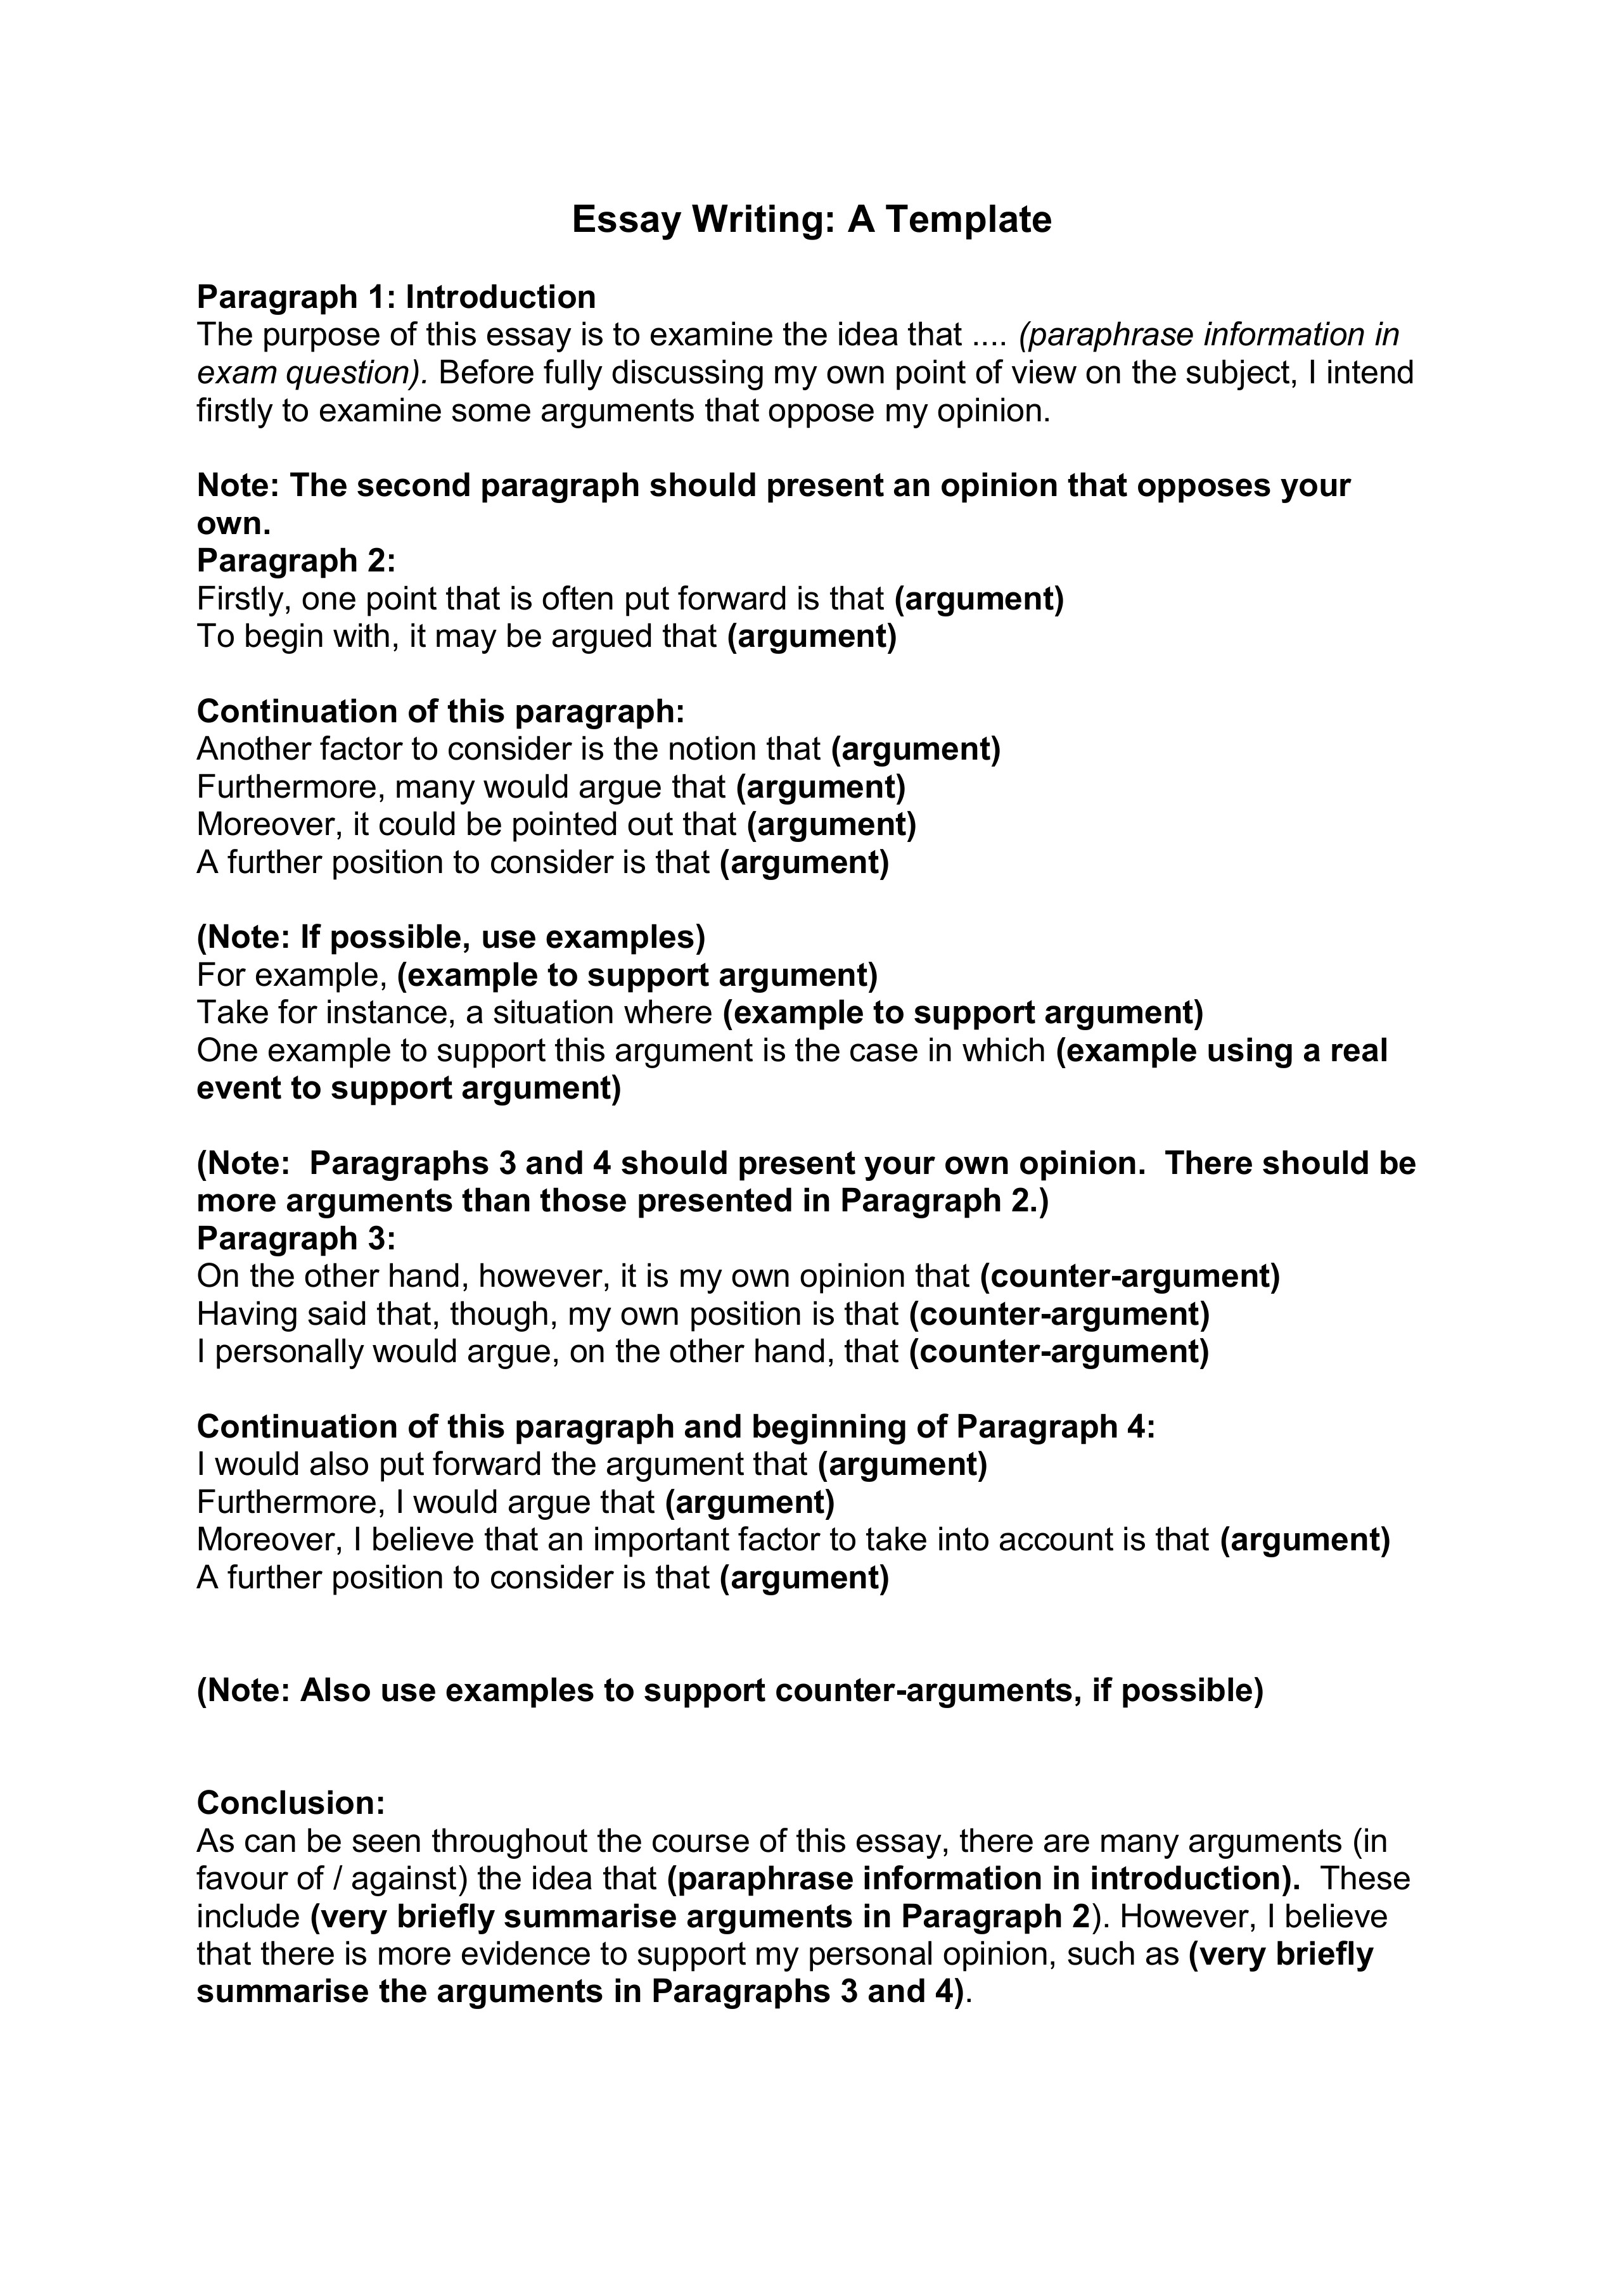 004 Opinion Essay Topics Writing Template For Part Sensational Essays 5th Grade Prompts Middle School 8th Full